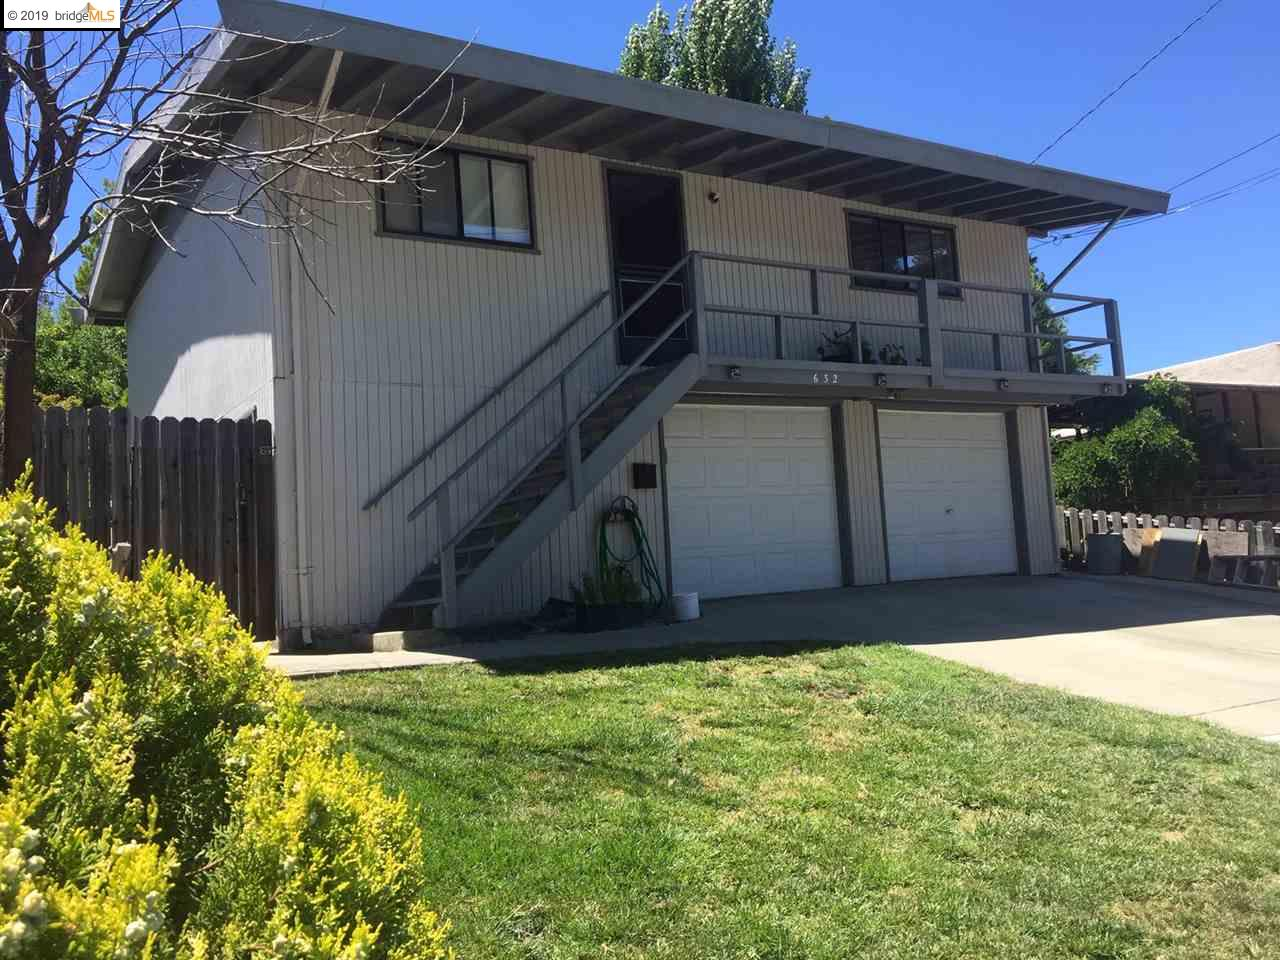 632 RODEO AVE, RODEO, CA 94572